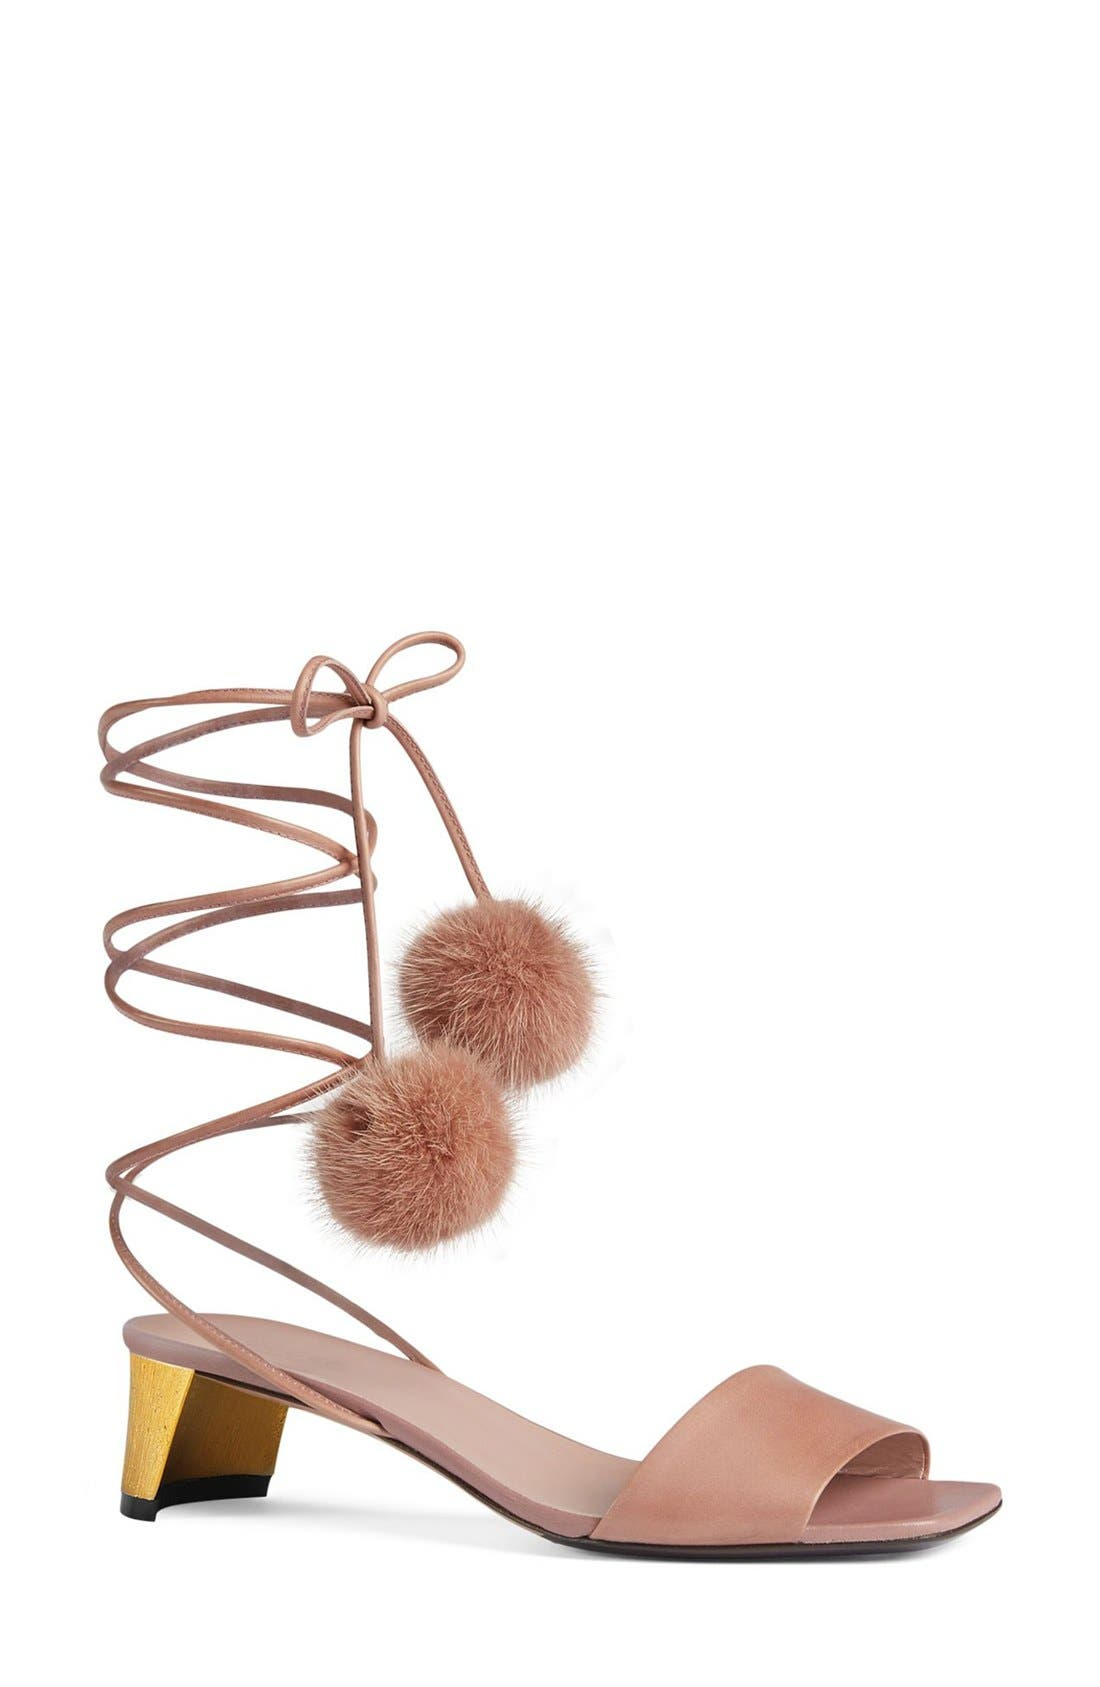 Alternate Image 1 Selected - Gucci 'Heloise' Sandal (Women)